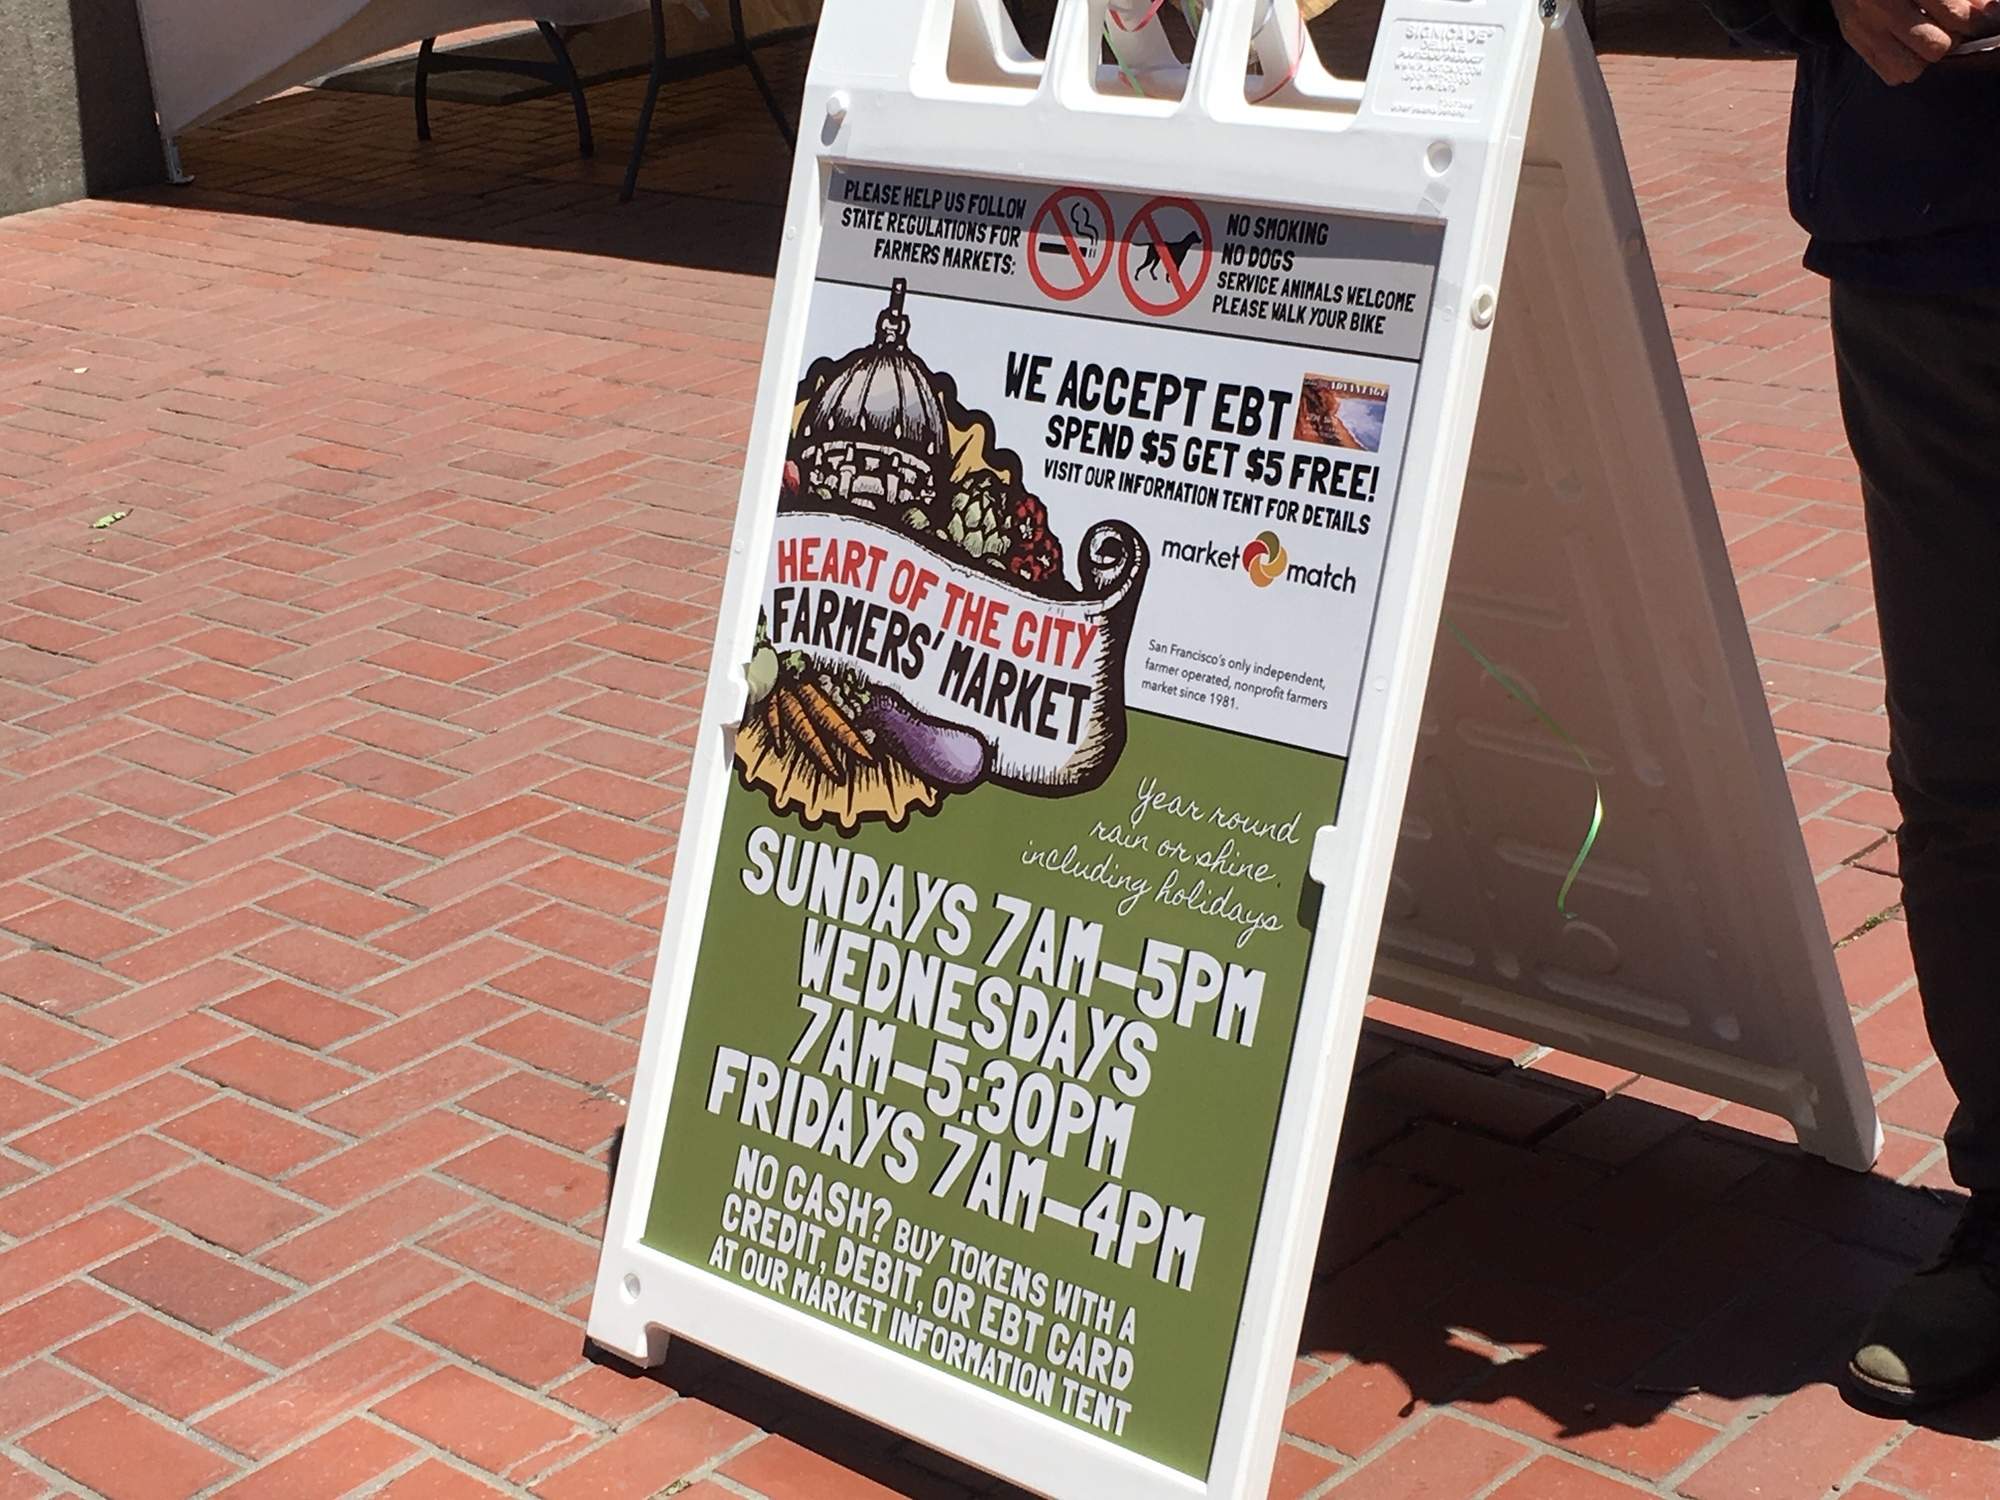 EBT and other food assistance is welcome at the farmers market, which provides matching funds.